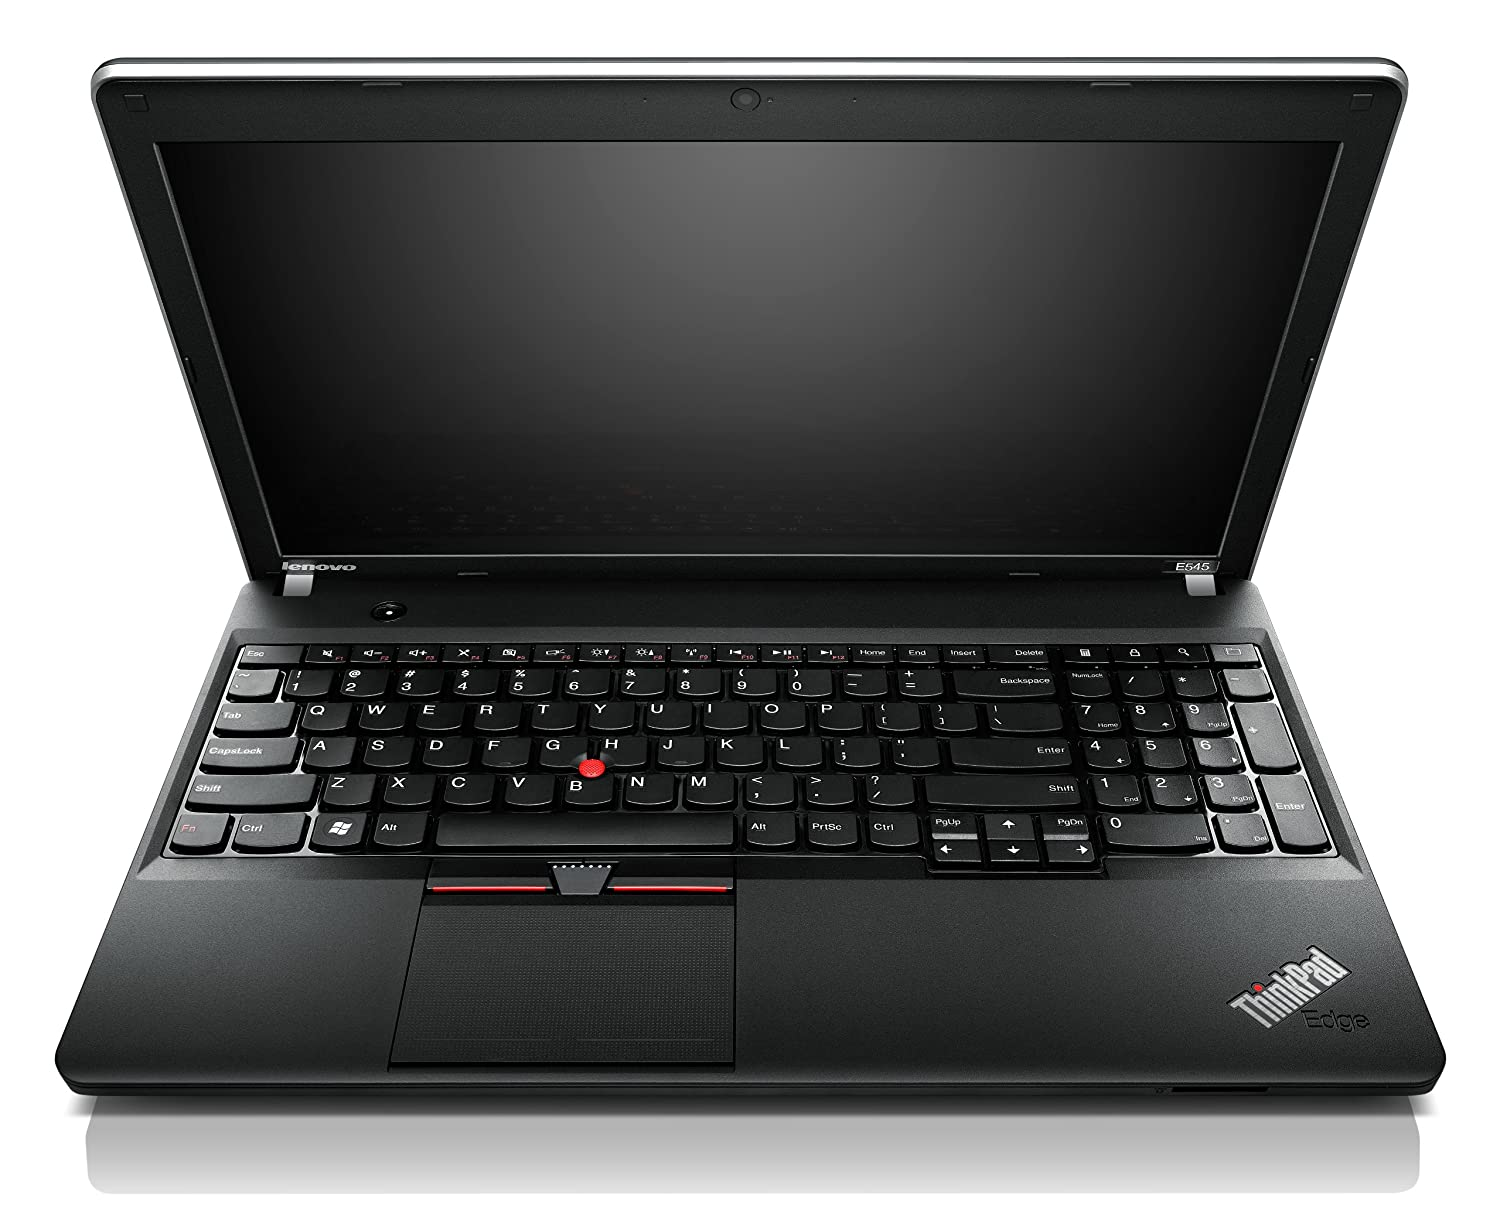 Lenovo ThinkPad Edge E545 20B20011US 15.6-Inch Laptop